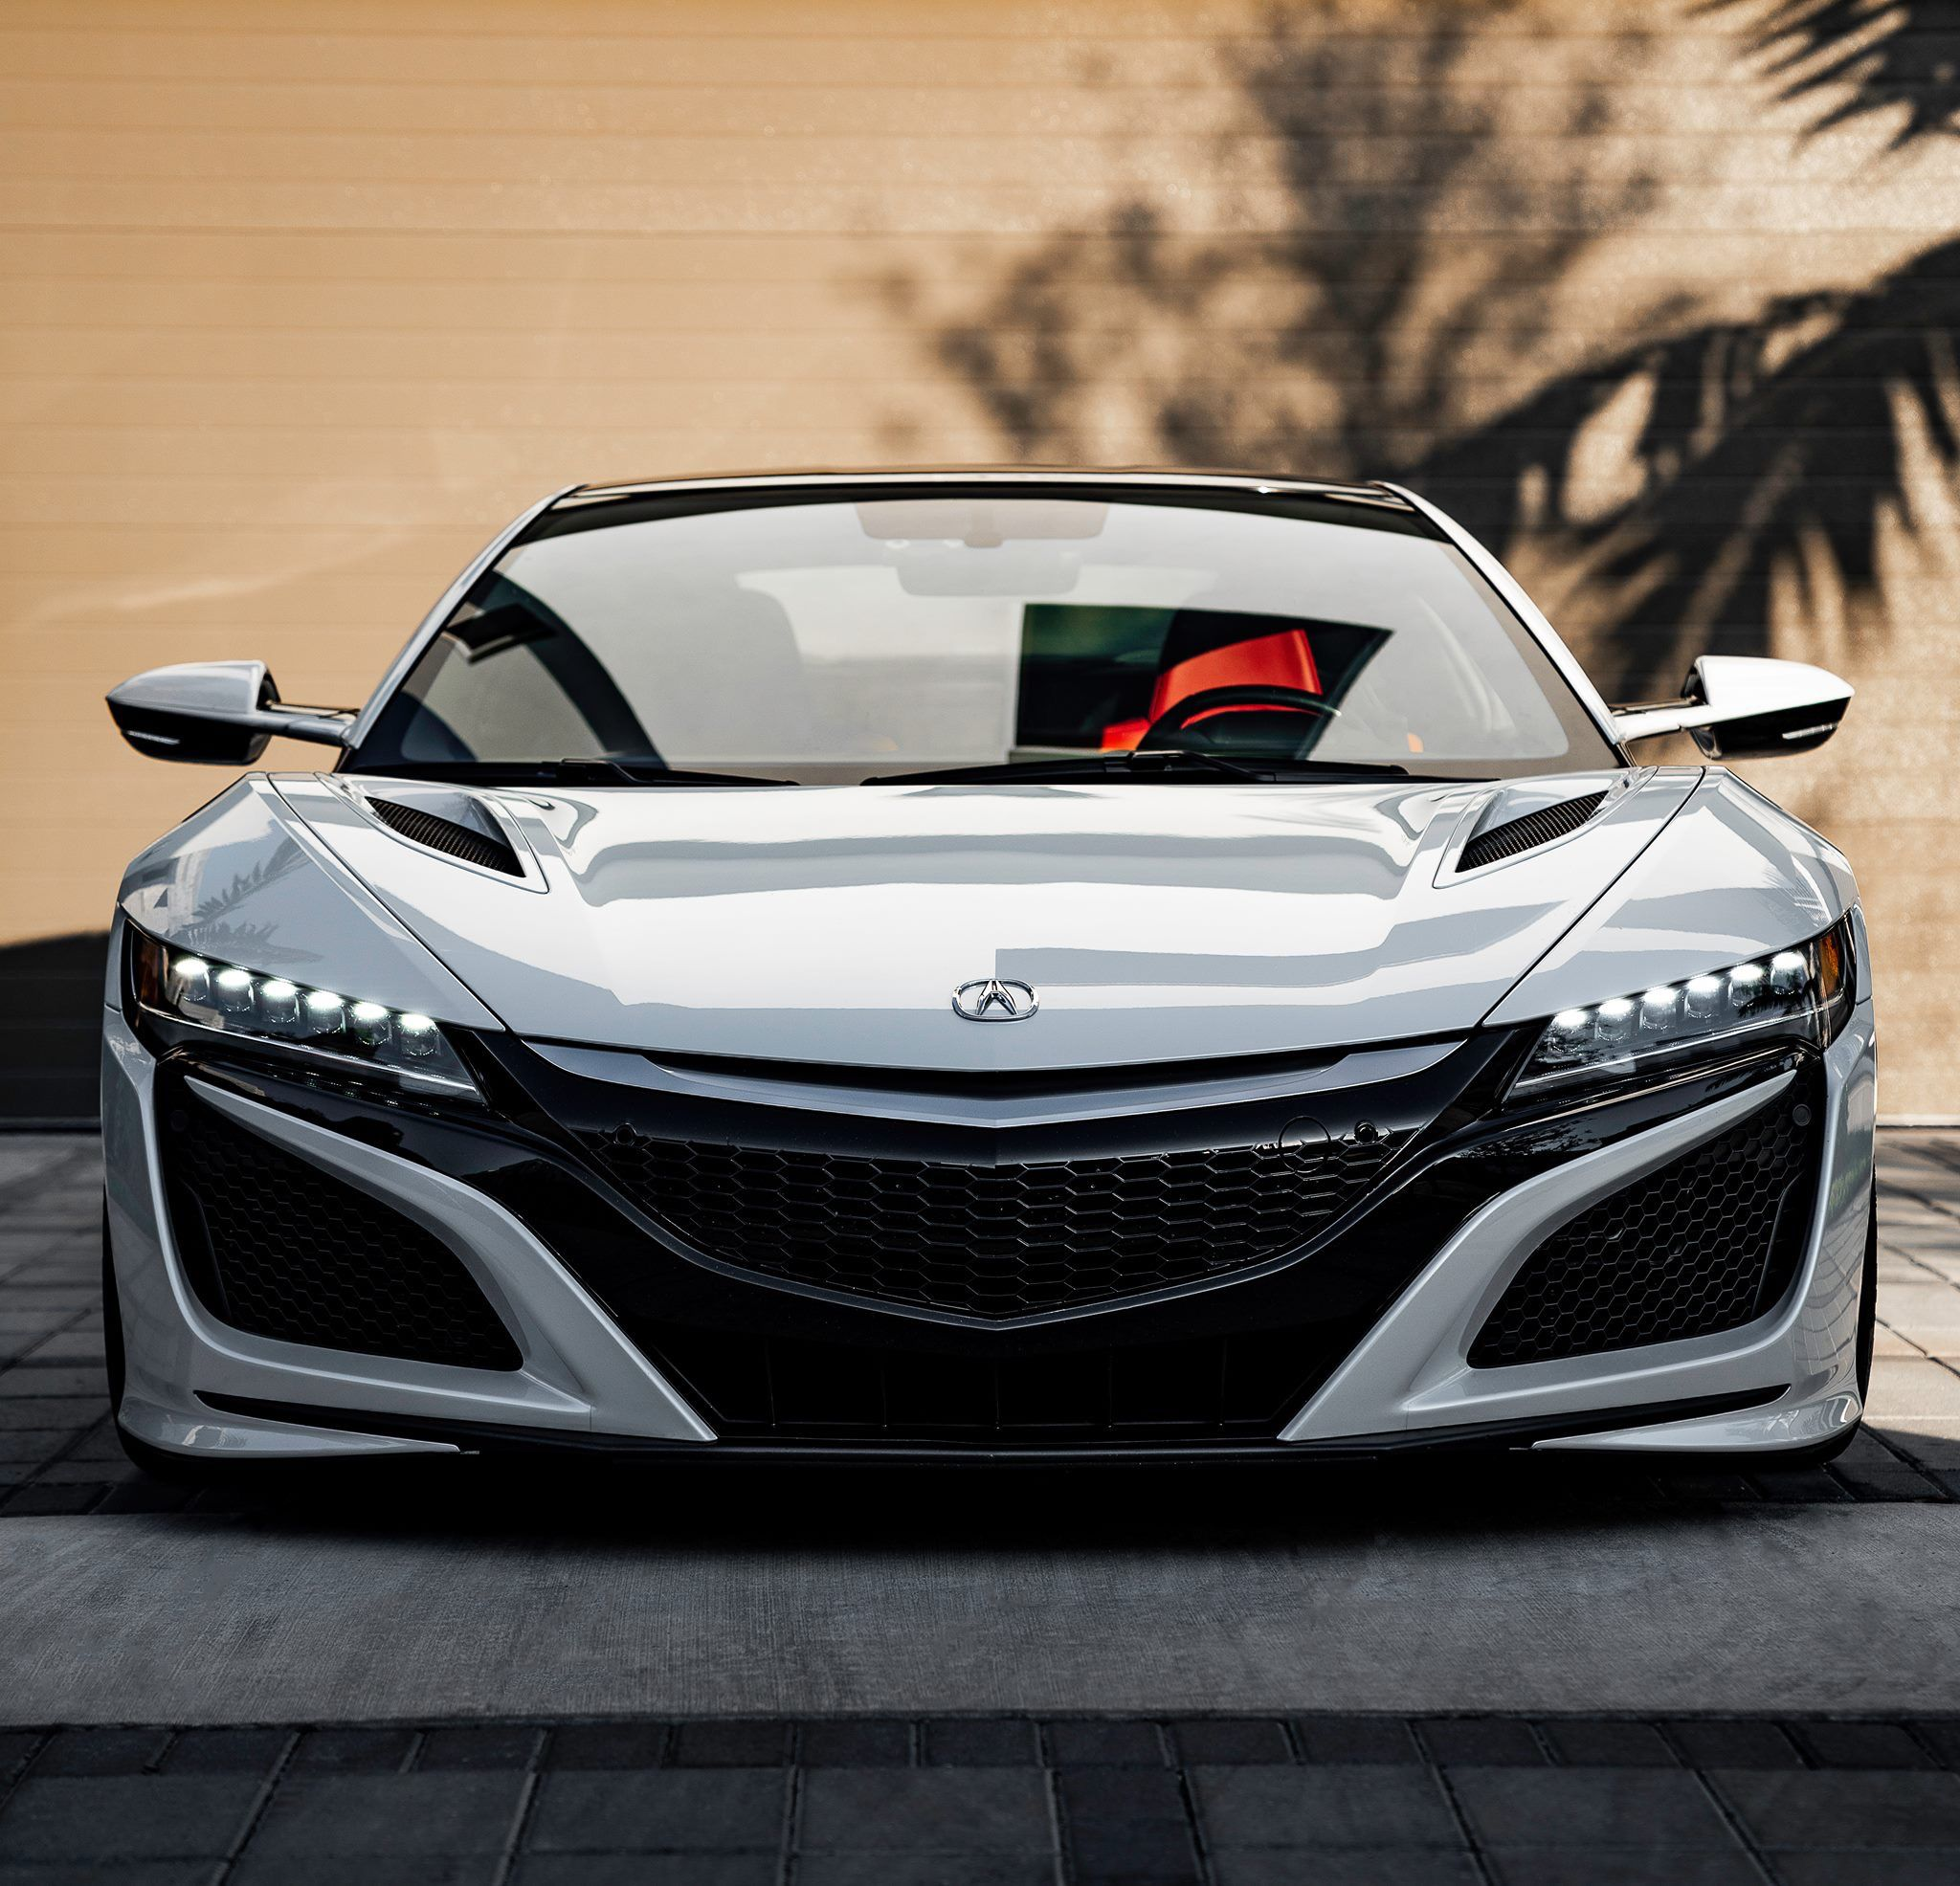 Pin By Vincenzo Demone On Whips Acura Sports Car Nsx Acura Nsx